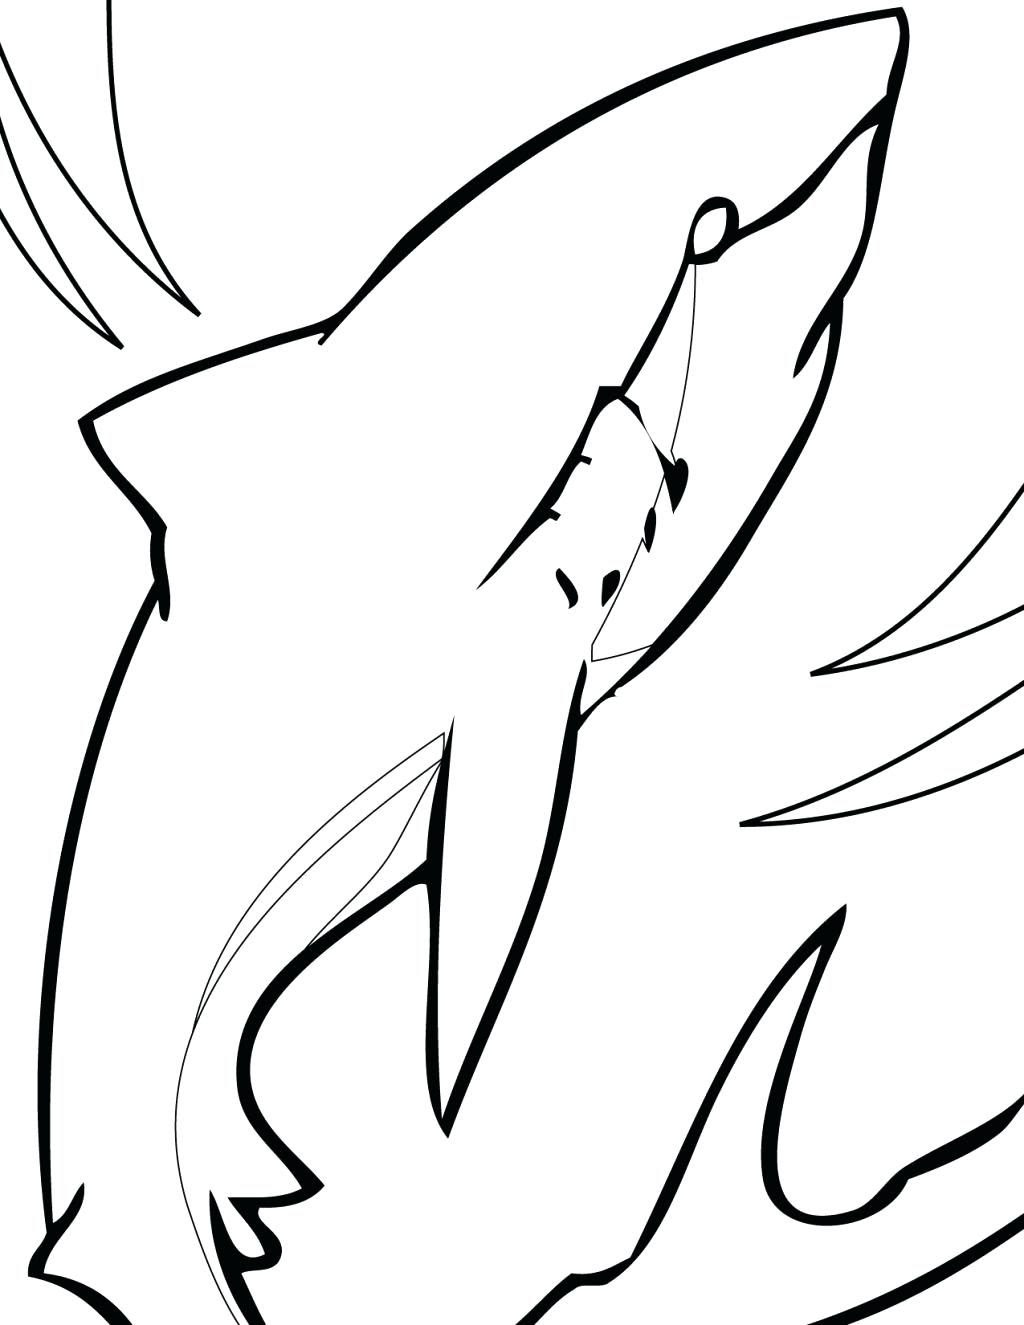 Shark With Mouth Open Drawing at GetDrawings | Free download